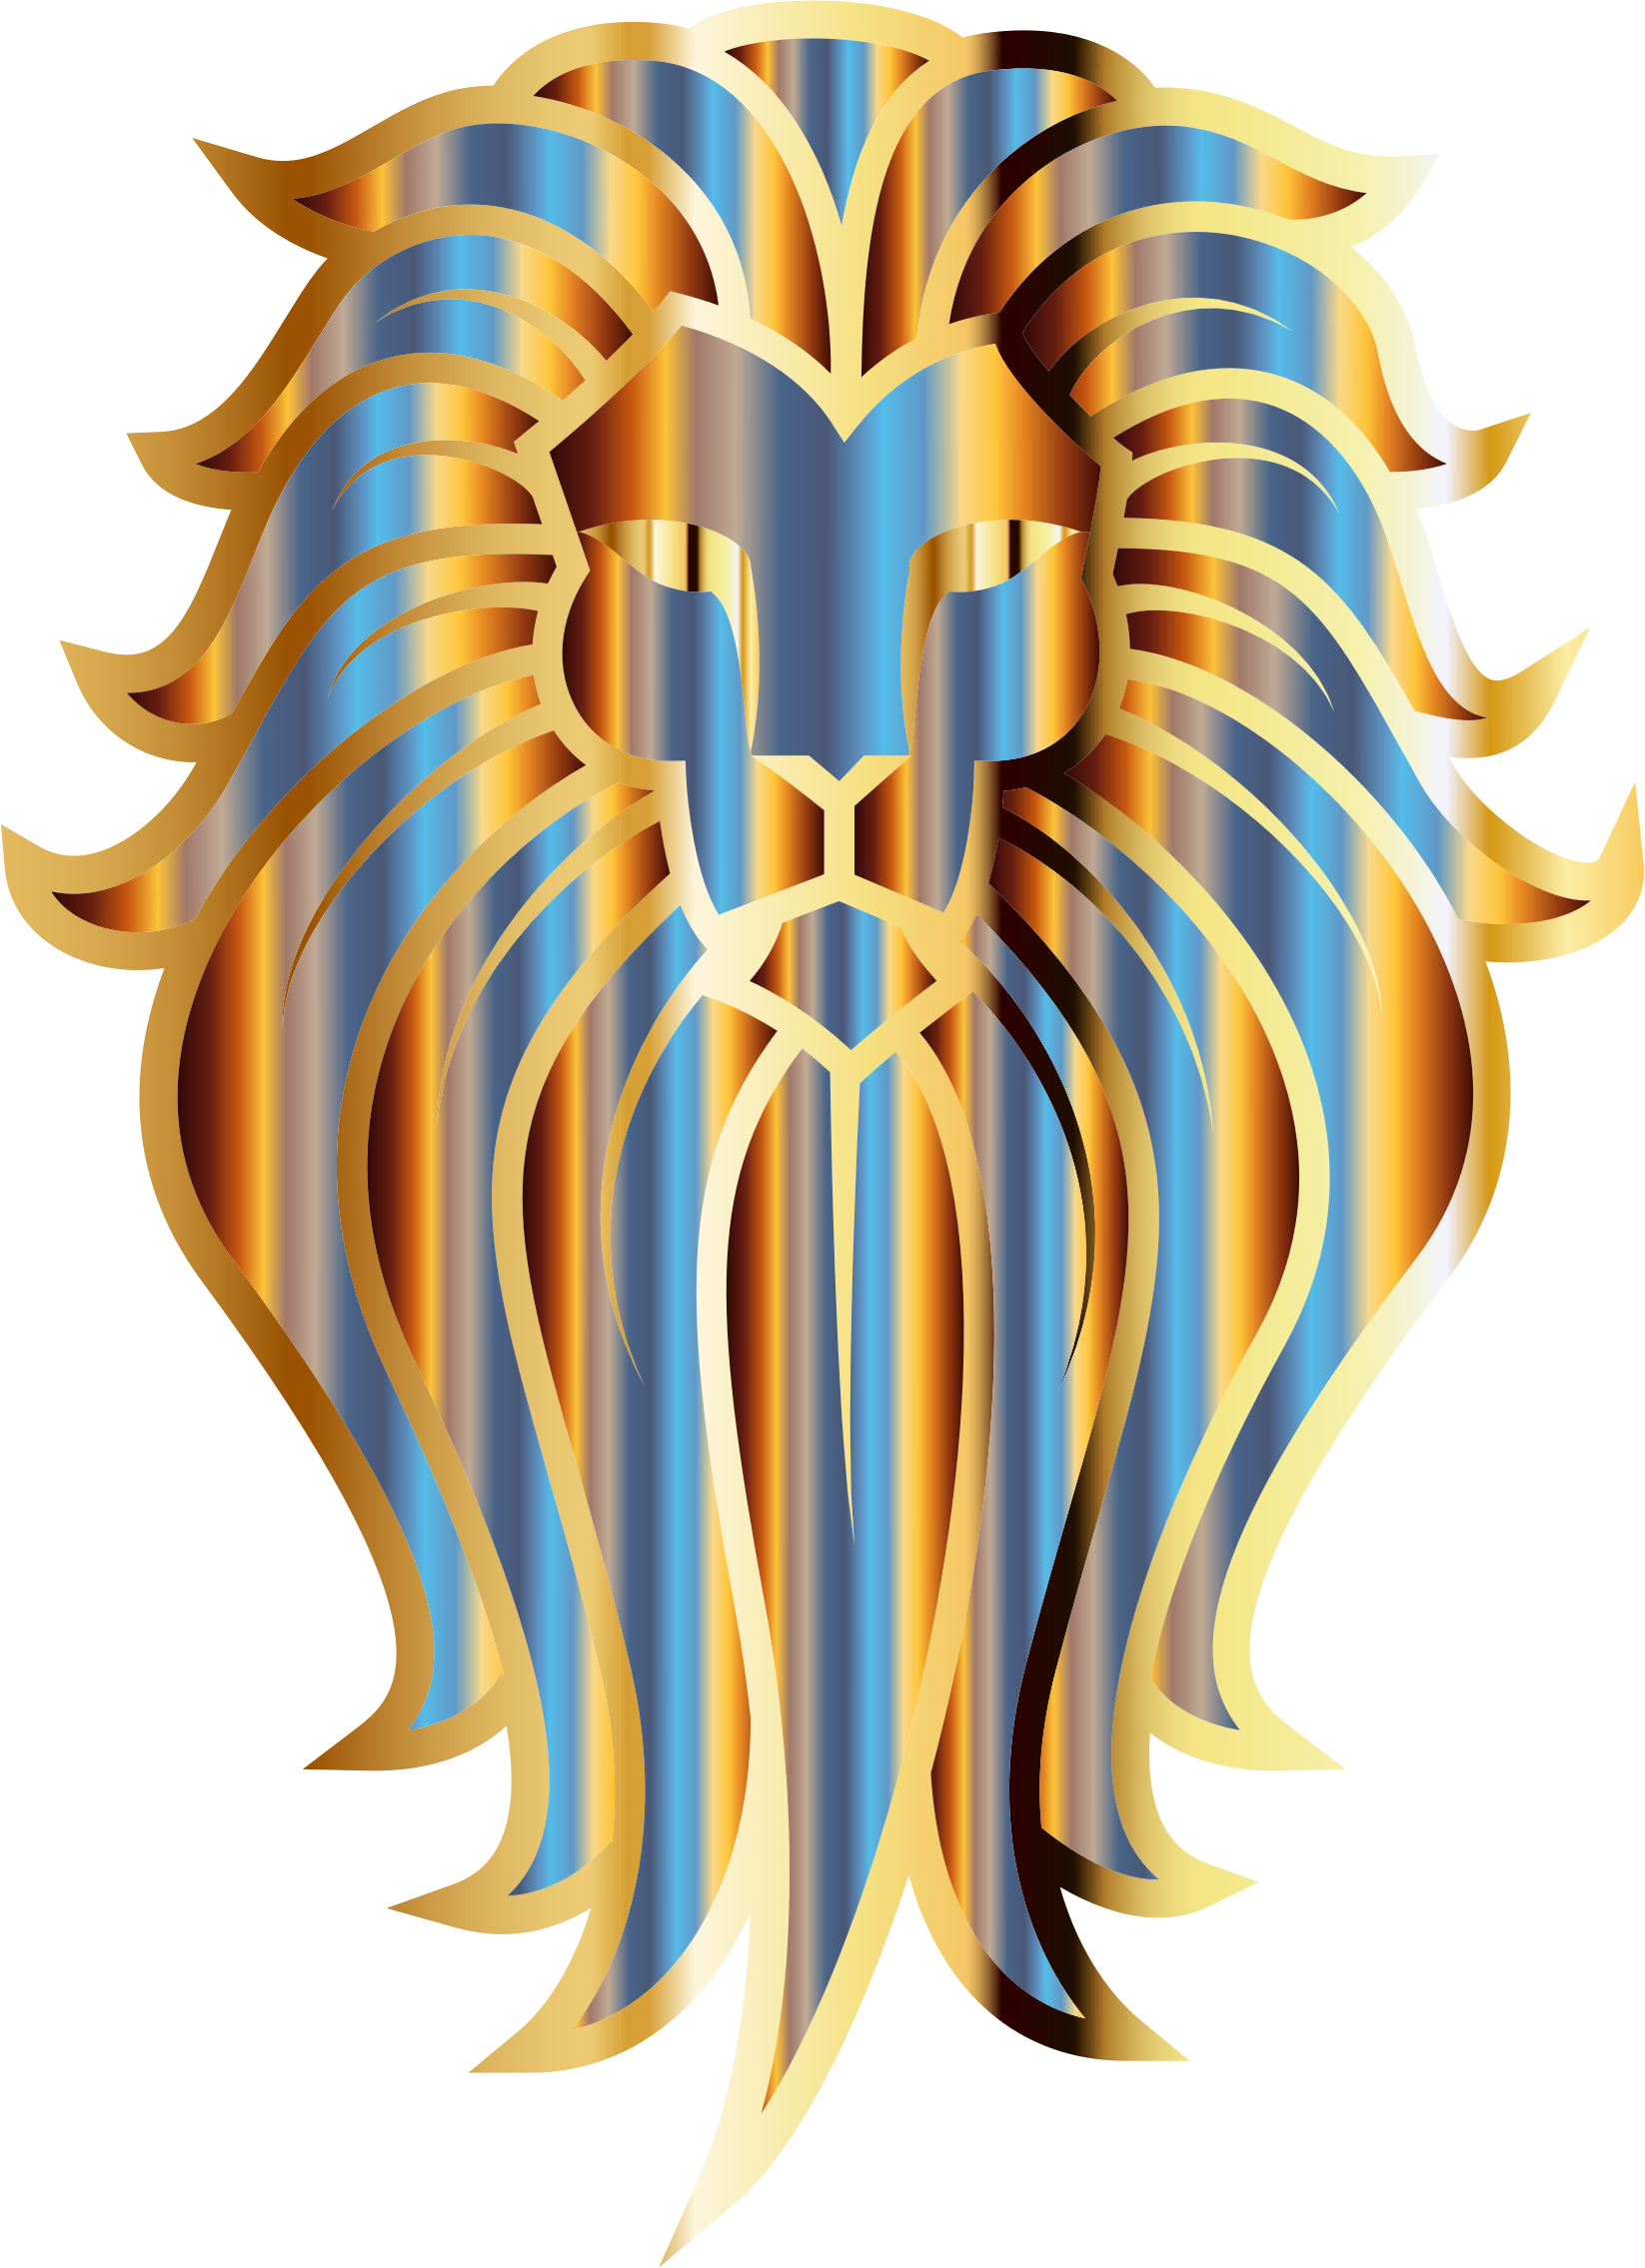 Chromatic Lion Face Tattoo No Background by GDJ